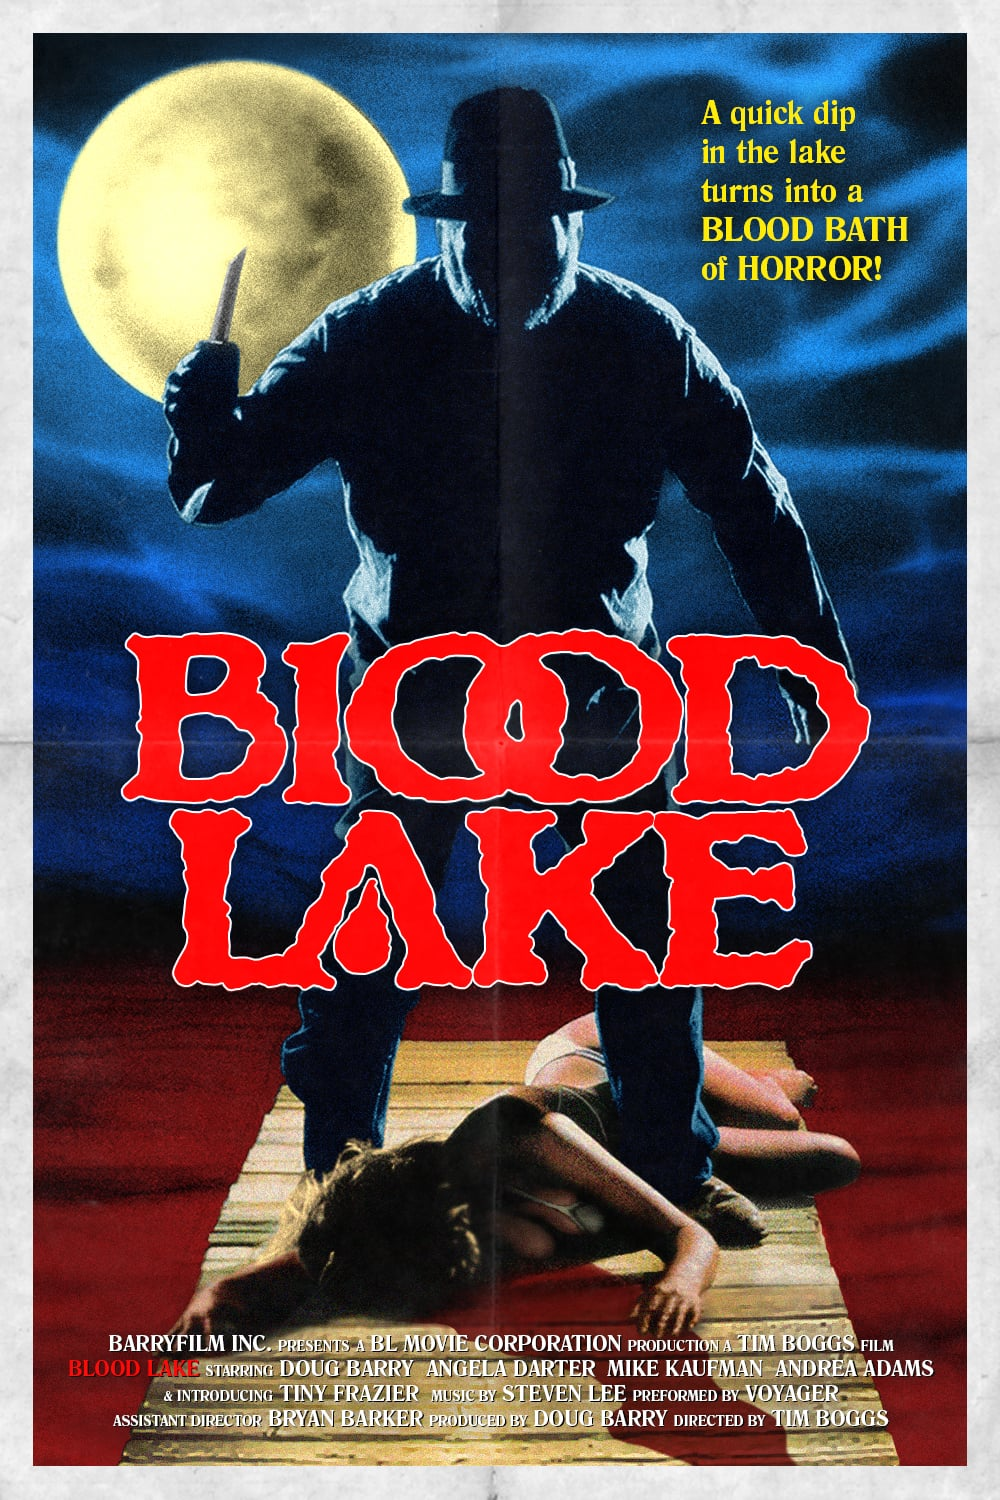 Poster for BLOOD LAKE